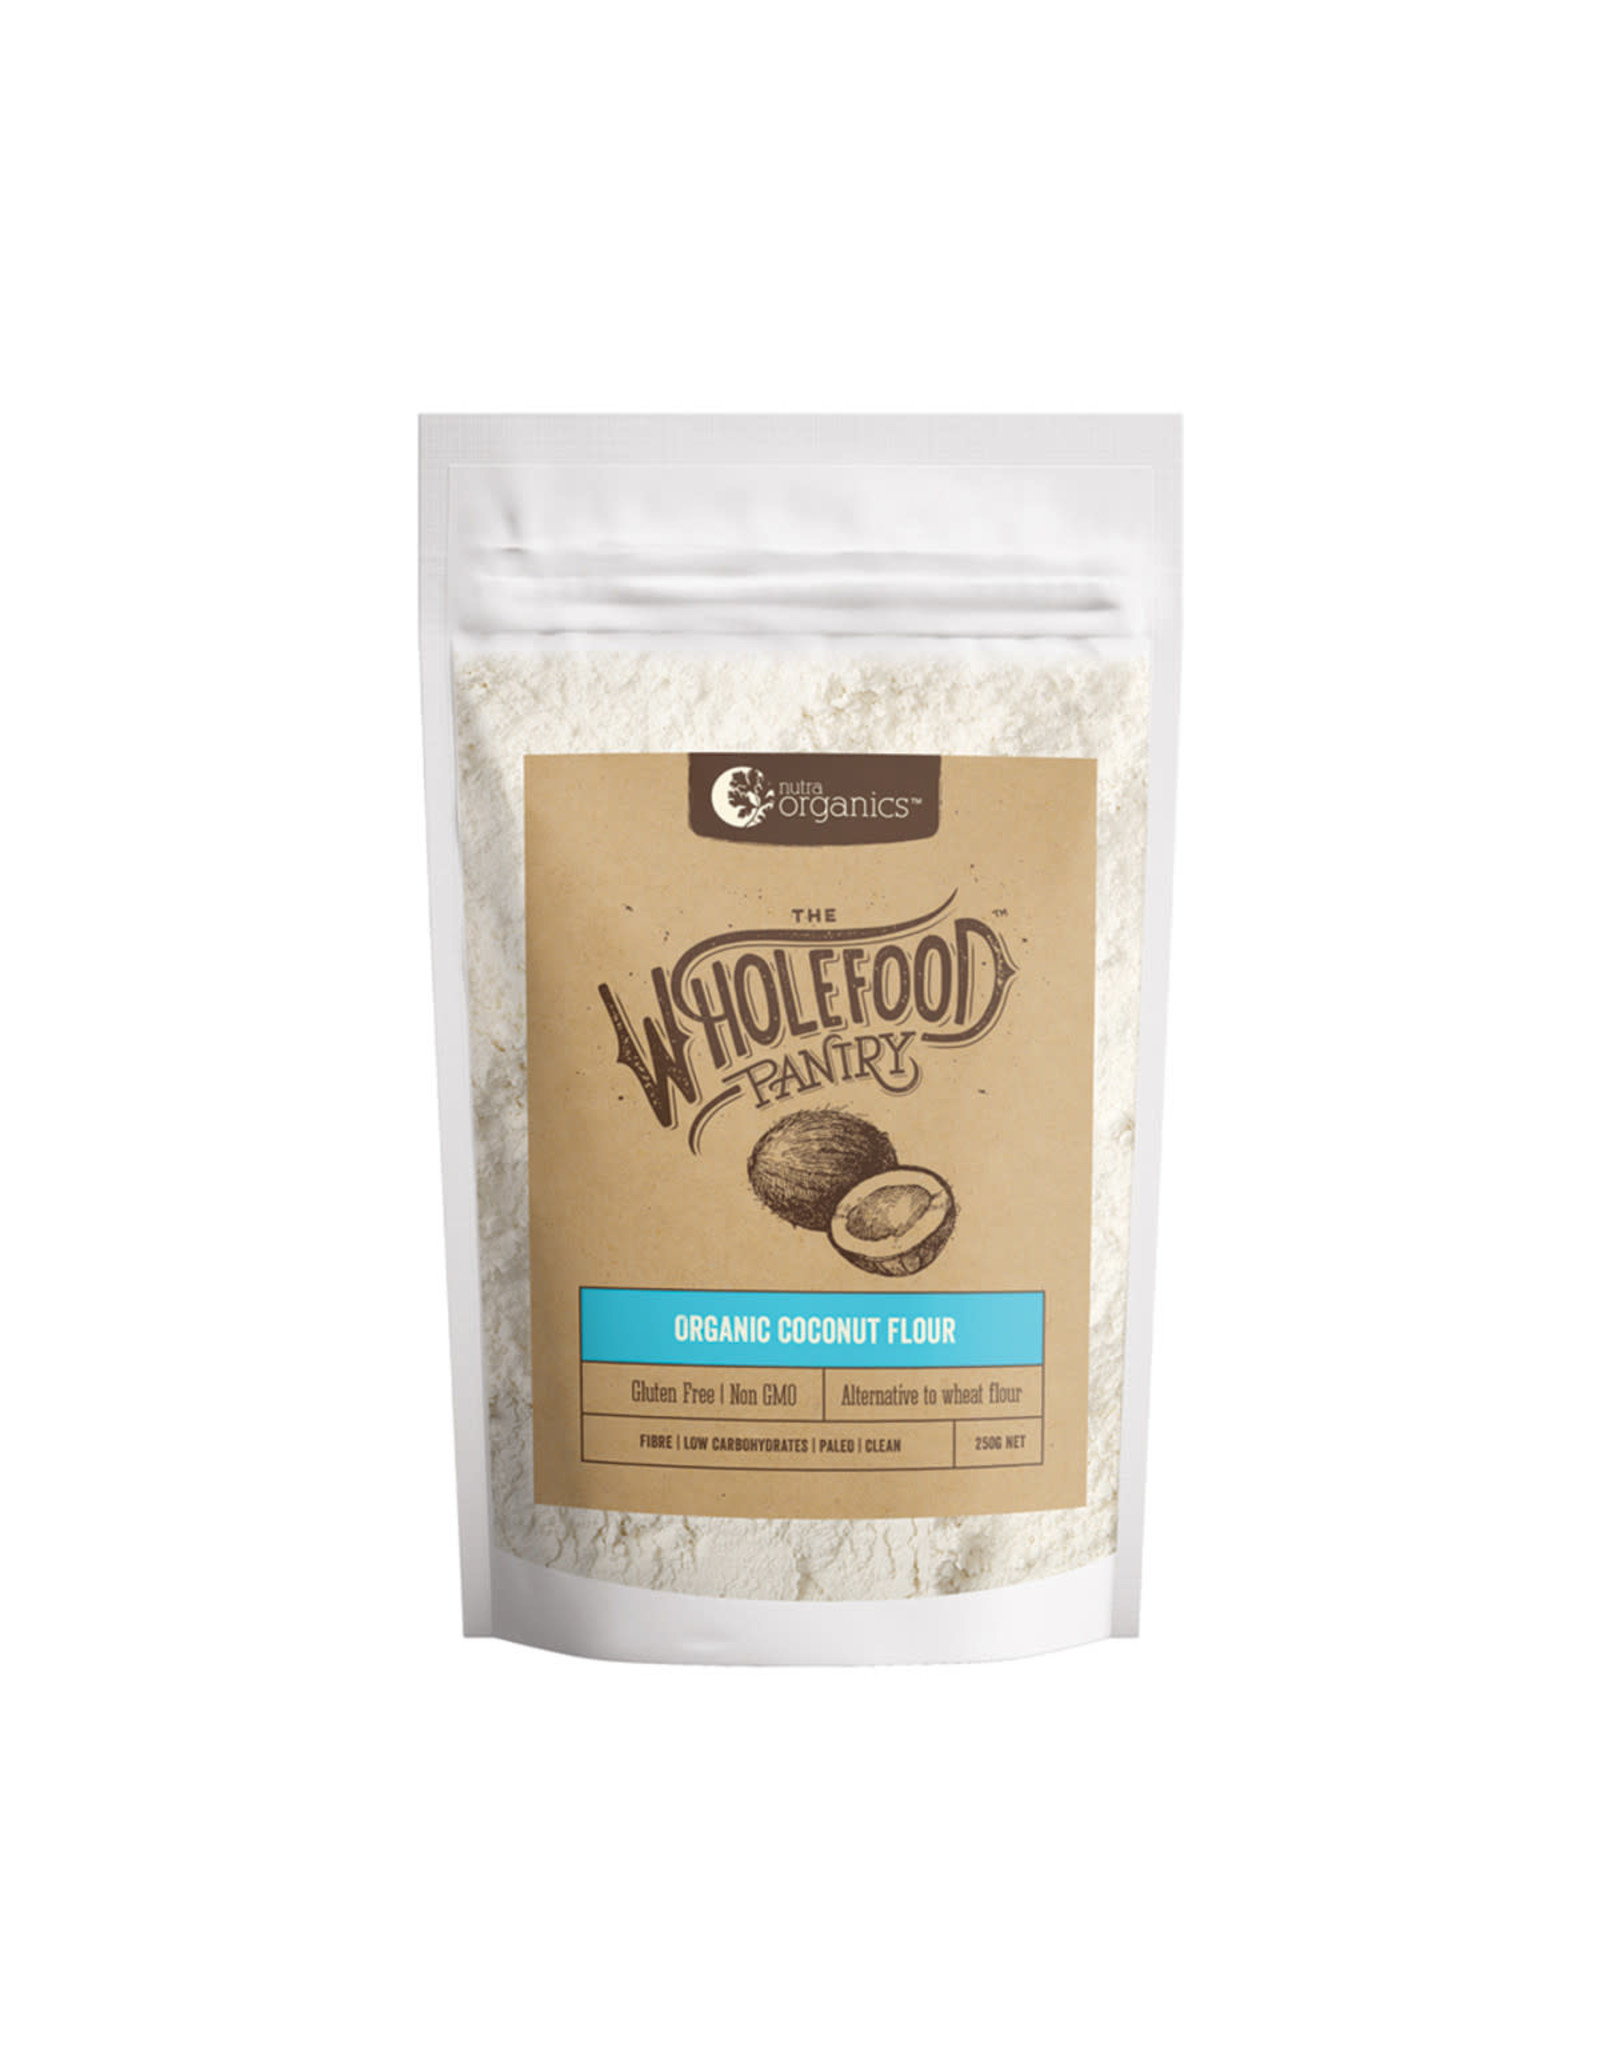 The Whole Food Pantry Coconut Flour 250g